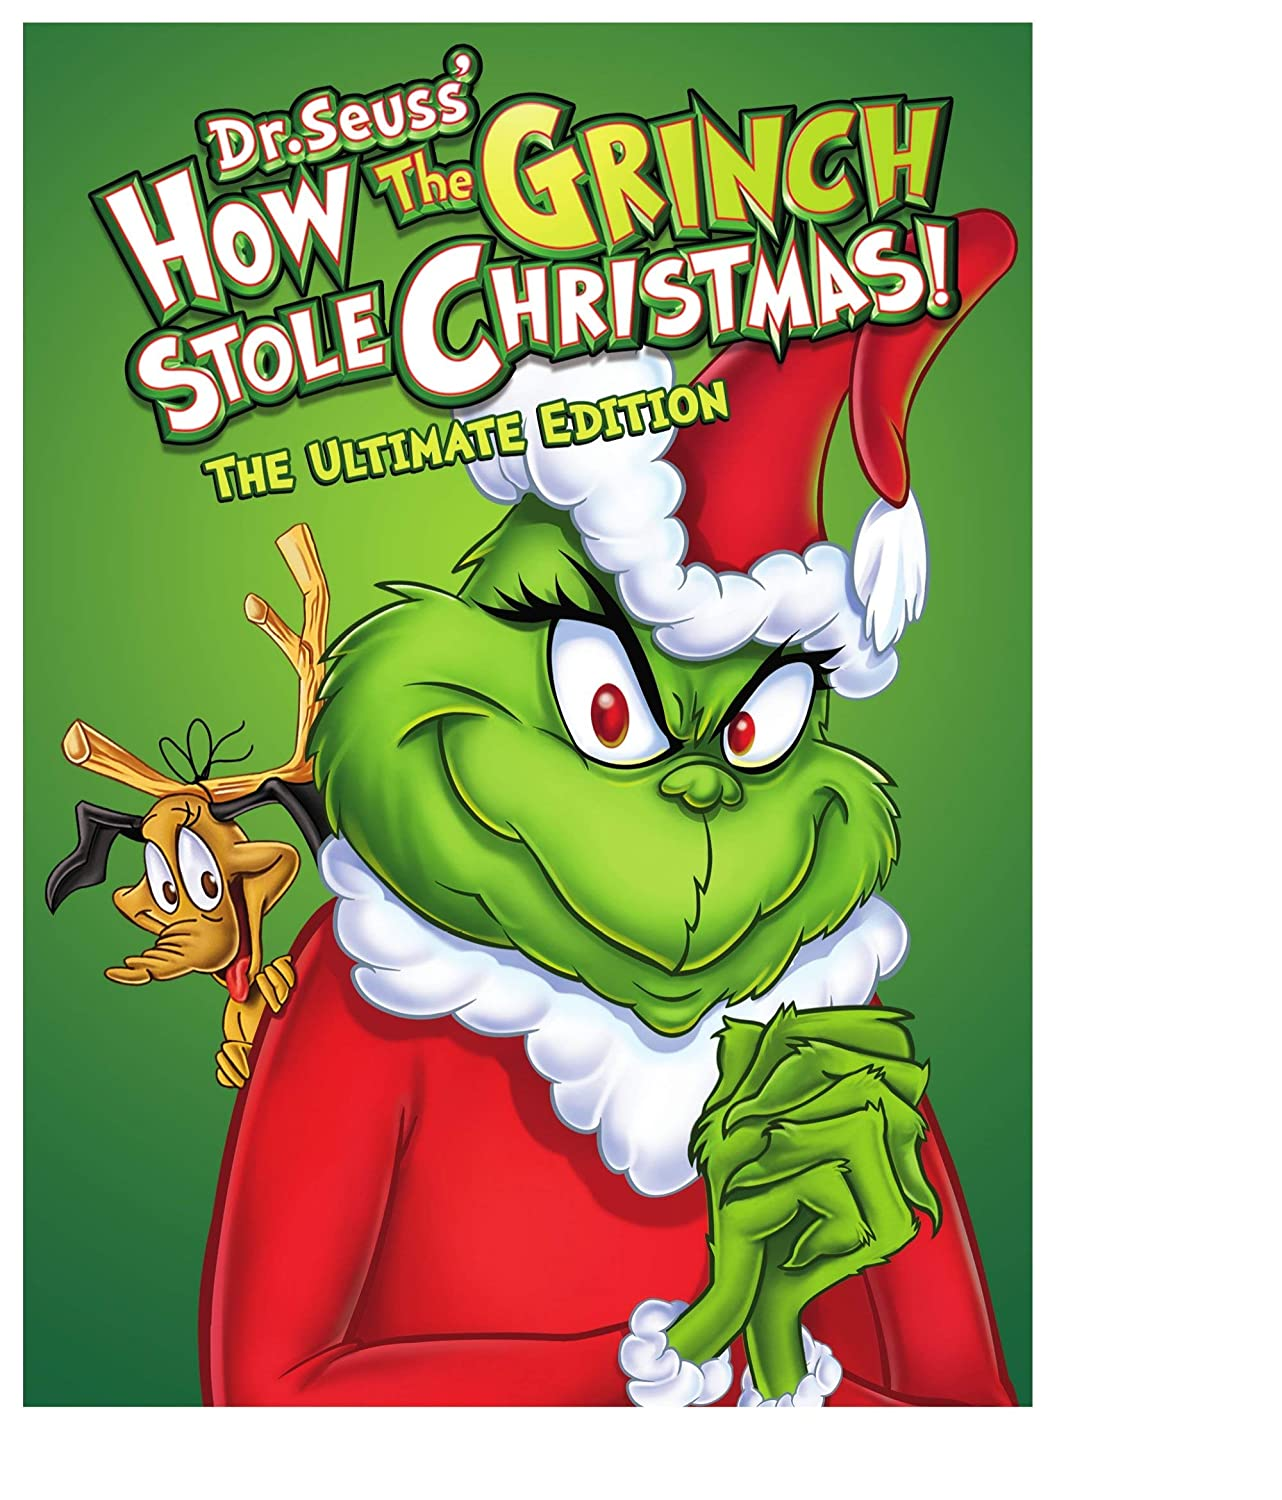 How the Grinch Stole Christmas (1966) starring Boris Karloff, Thurl Ravenscroft